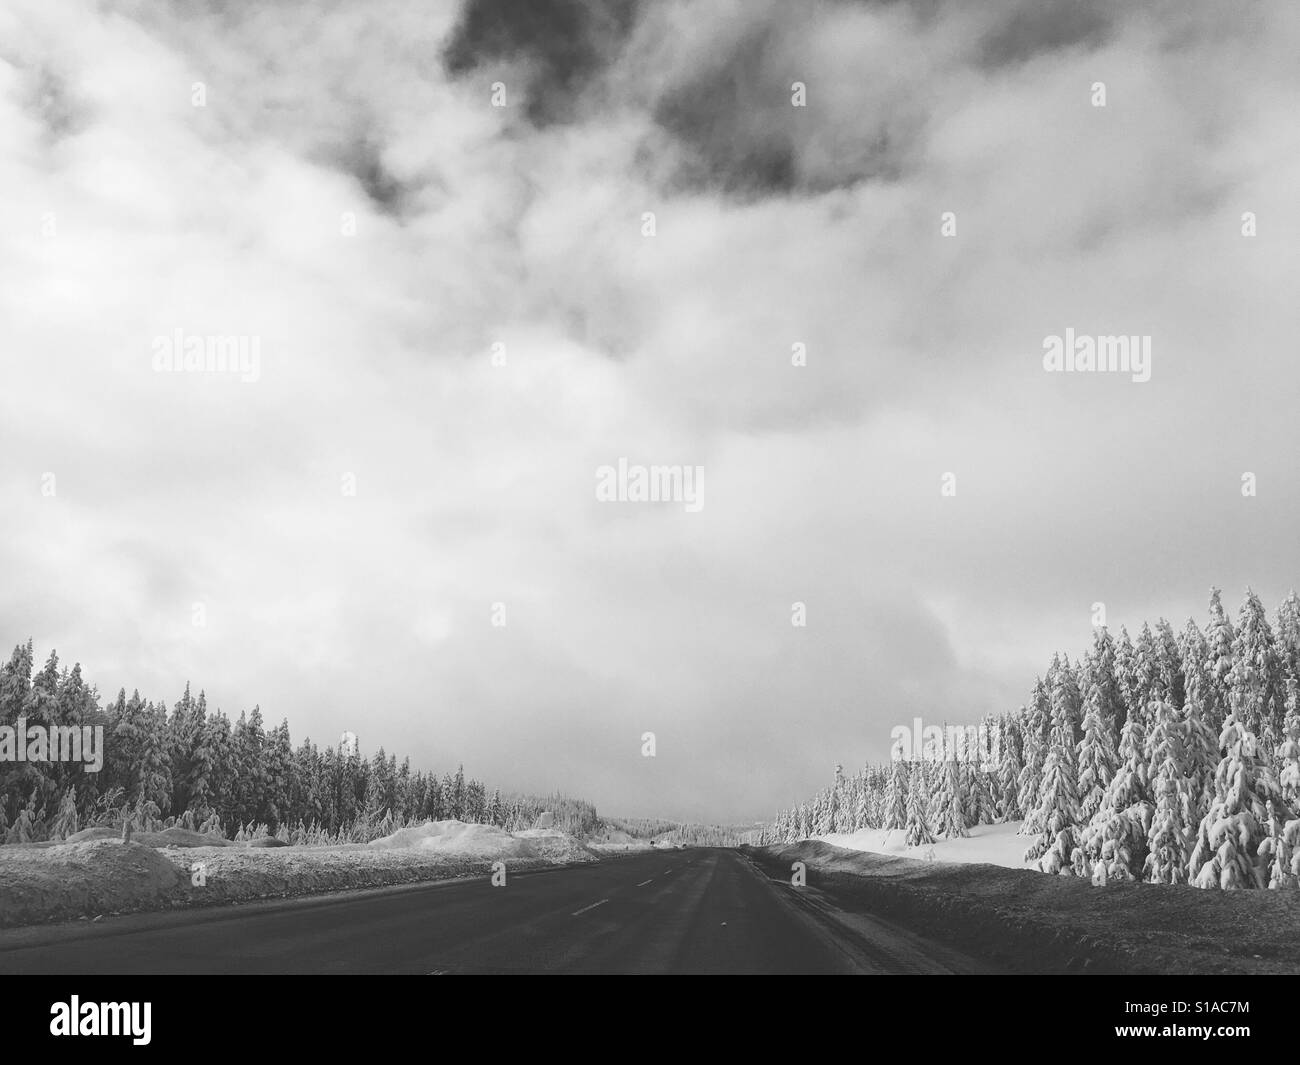 Black and white landscape of snowy mountain pass highway in Canada with evergreen trees - Stock Image